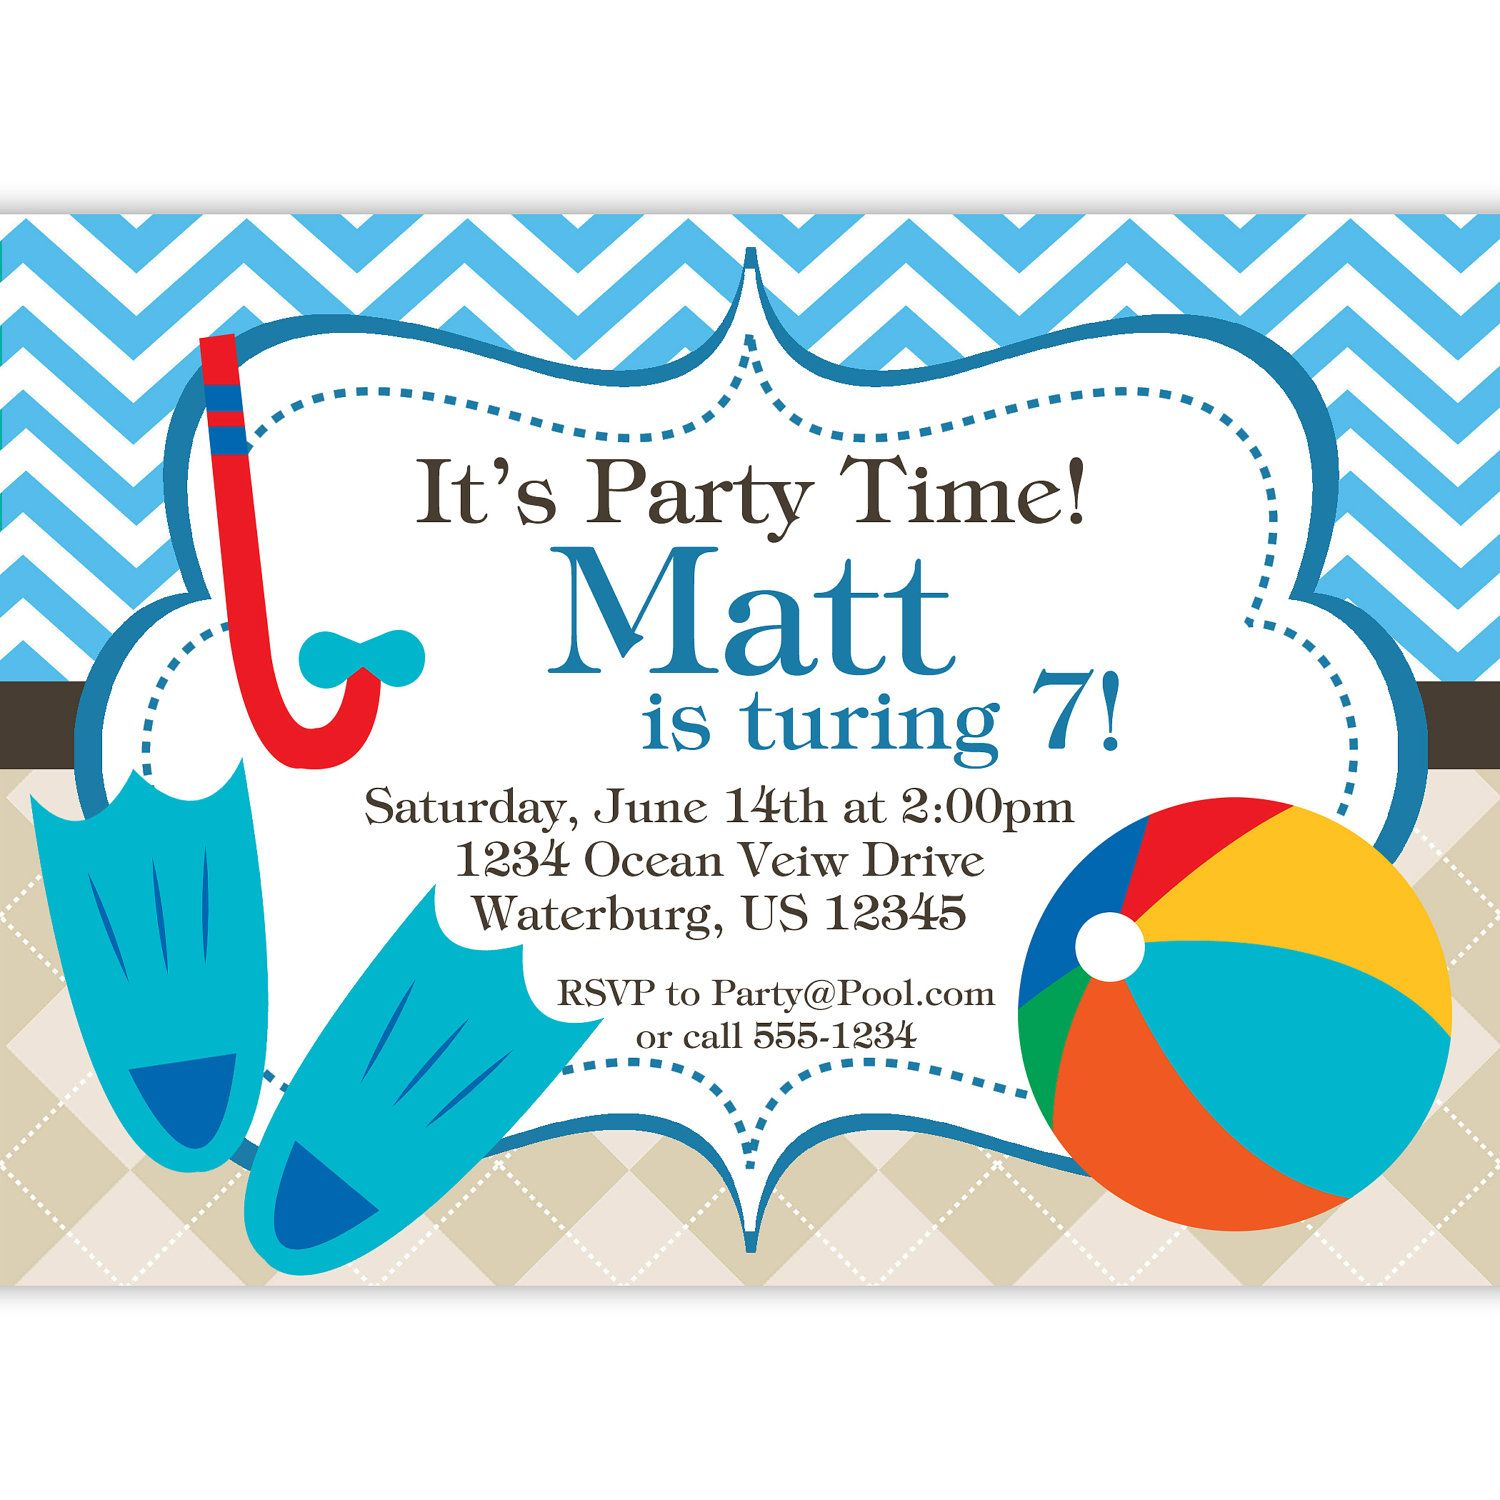 pool party invitation blue chevron and tan argyle beach ball pool party invitation blue chevron and tan argyle beach ball and flippers personalized birthday